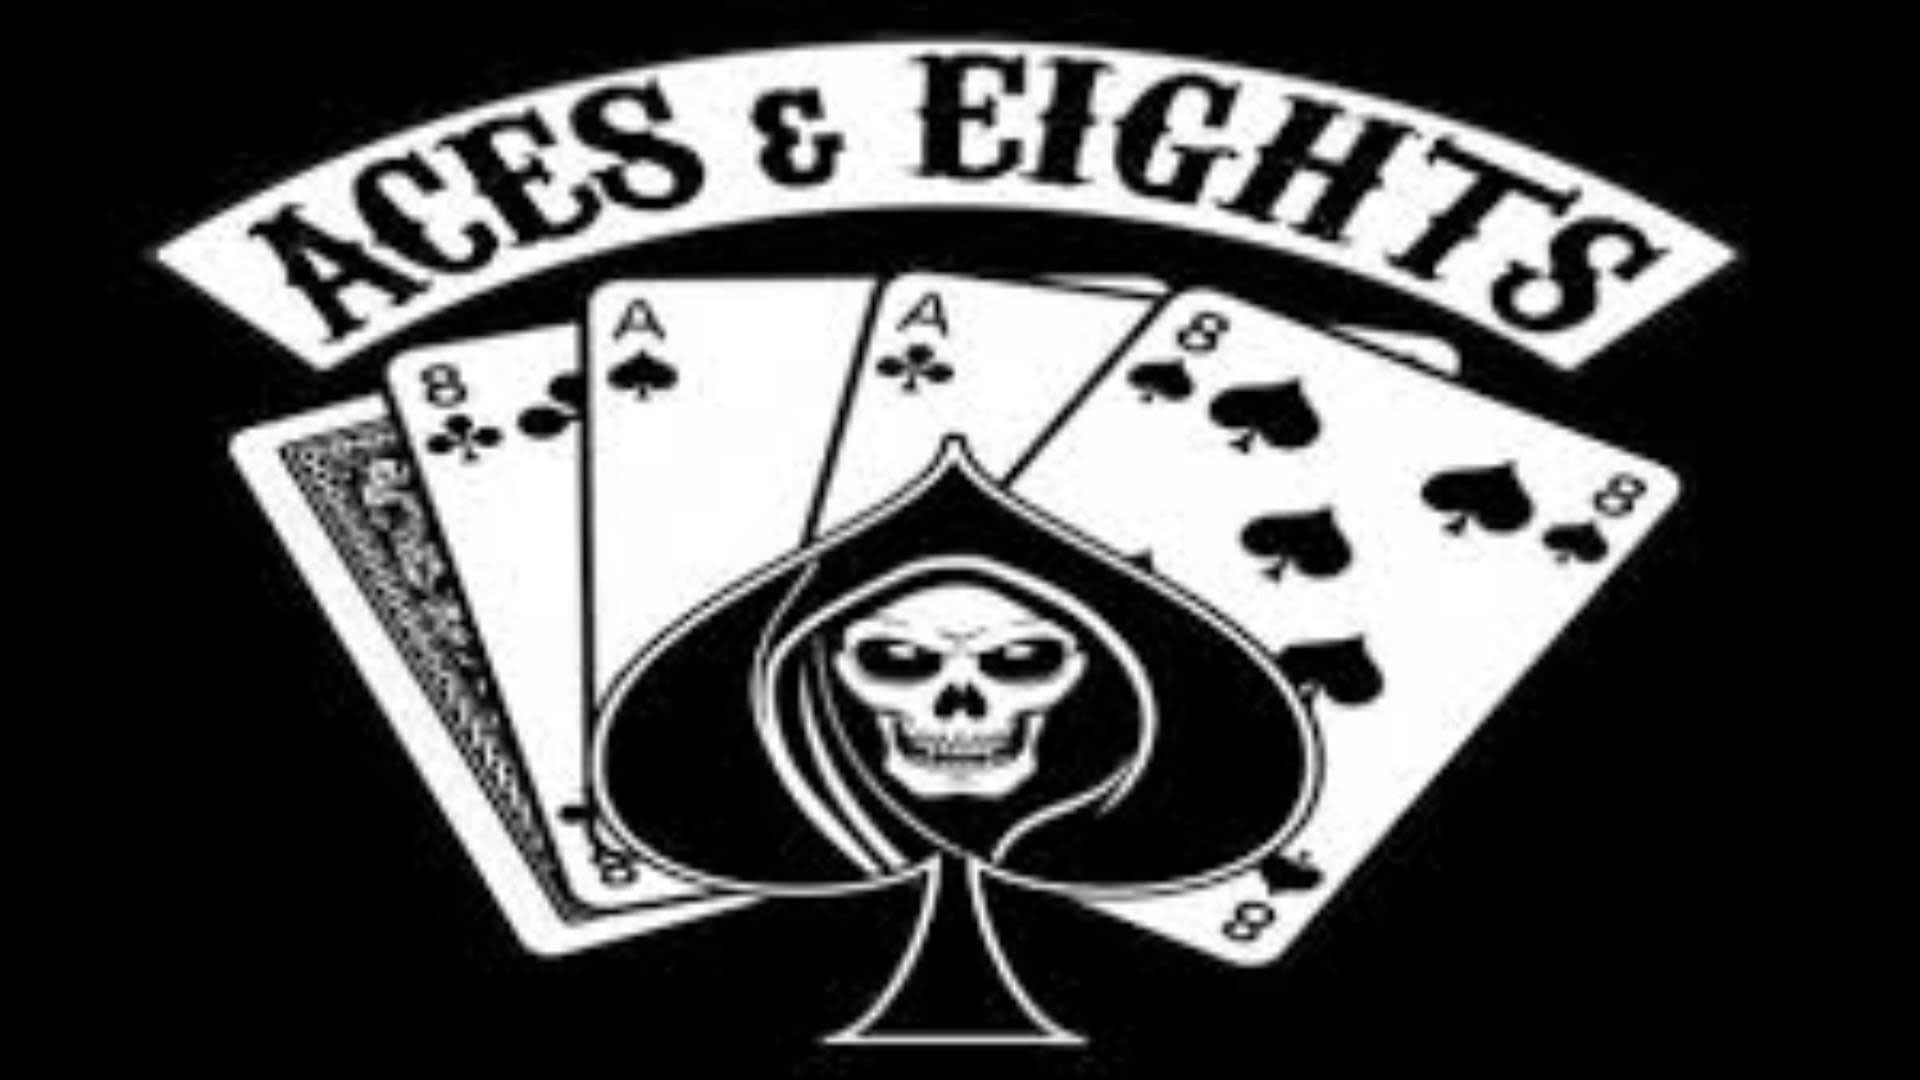 Aces and 8s poker newnan ga